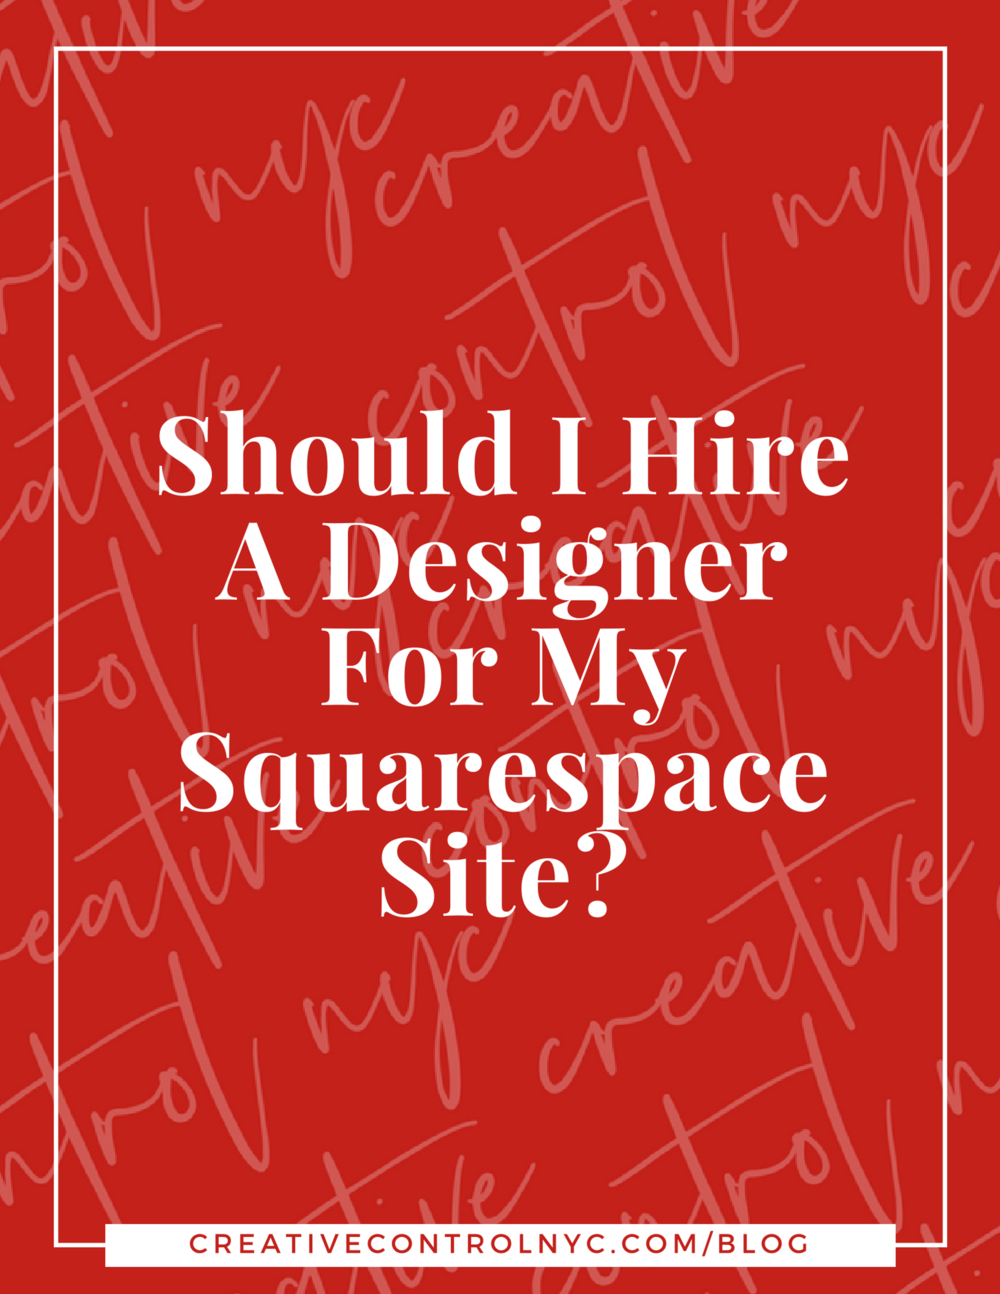 Creative Control NYC - Blog Post - Should I Hire A Designer For My Squarespace Site_.png